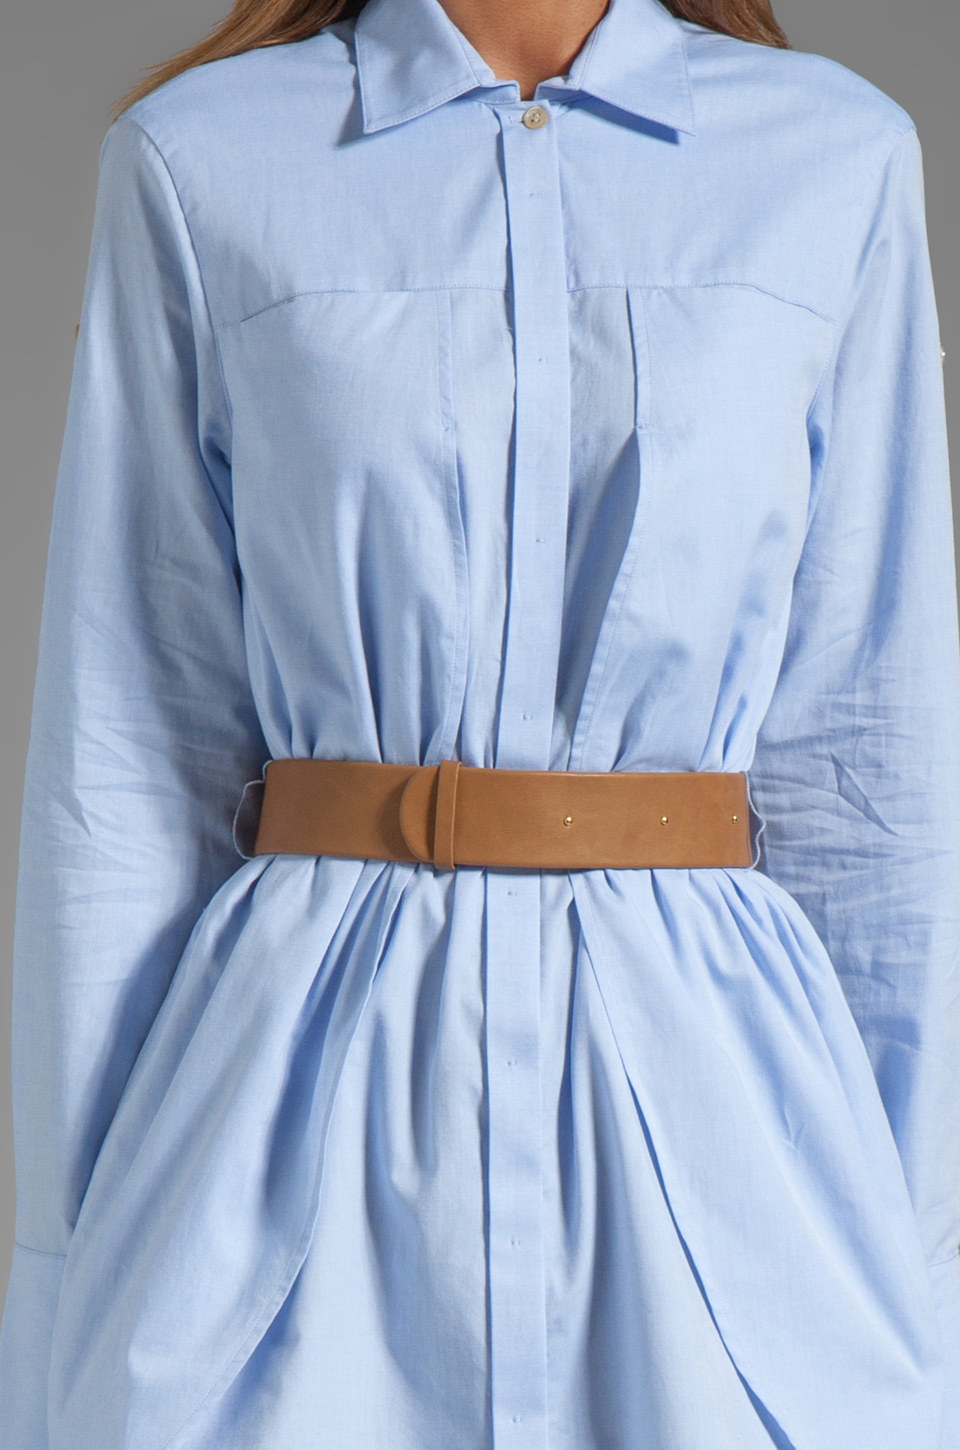 Halston Heritage Belted Shirtdress with Overlay in Chambray